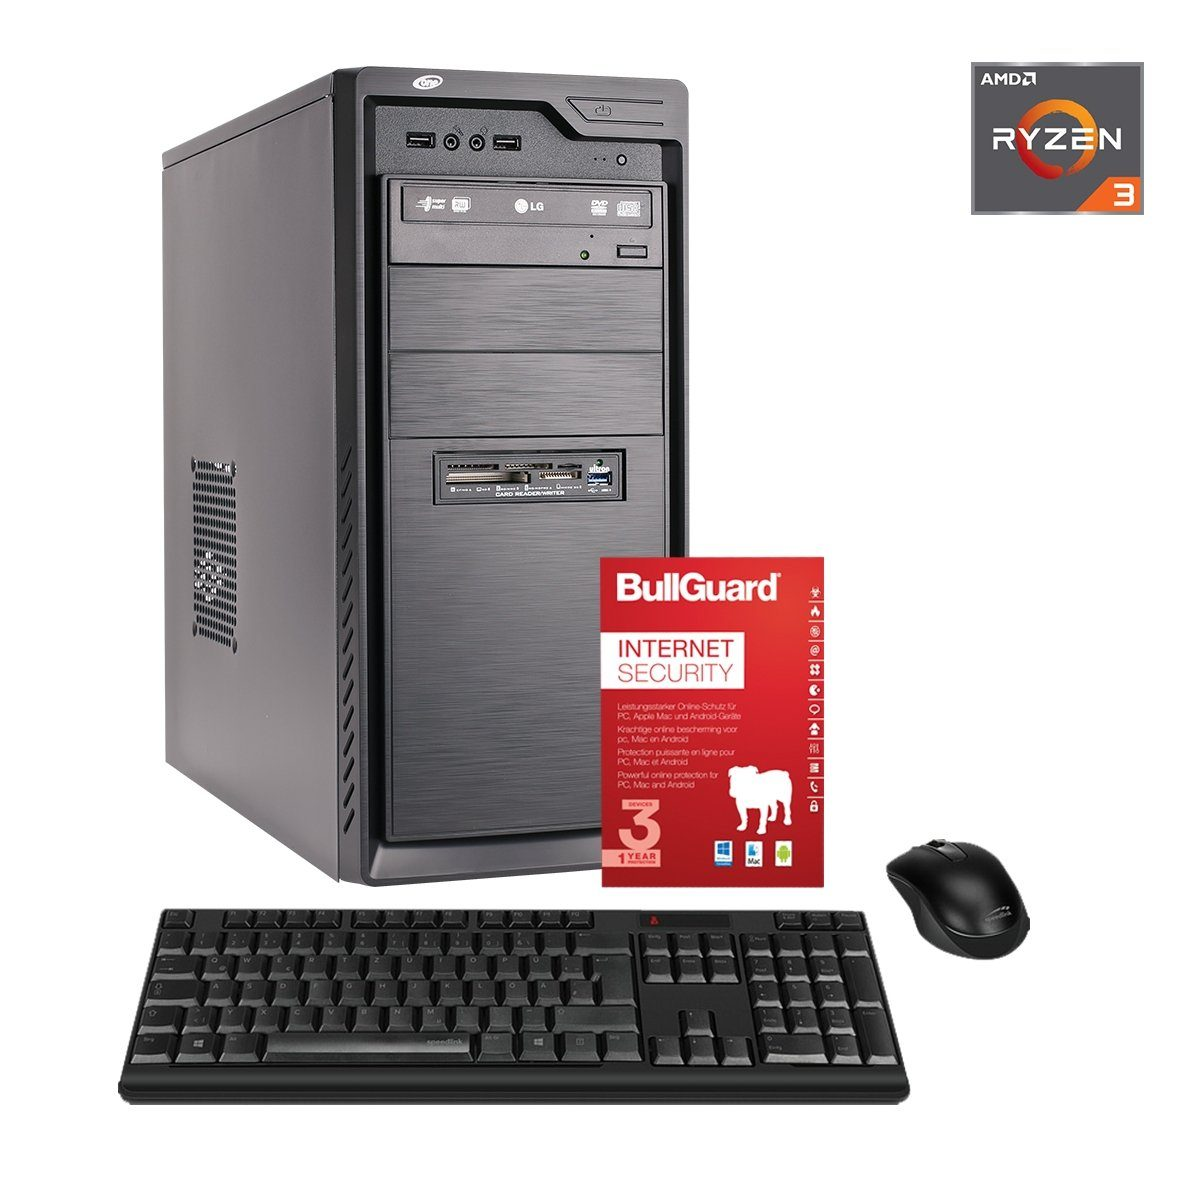 ONE PC, Ryzen 3 1200, GeForce GT 710, 4GB DDR4 SDRAM »Office PC 44020«